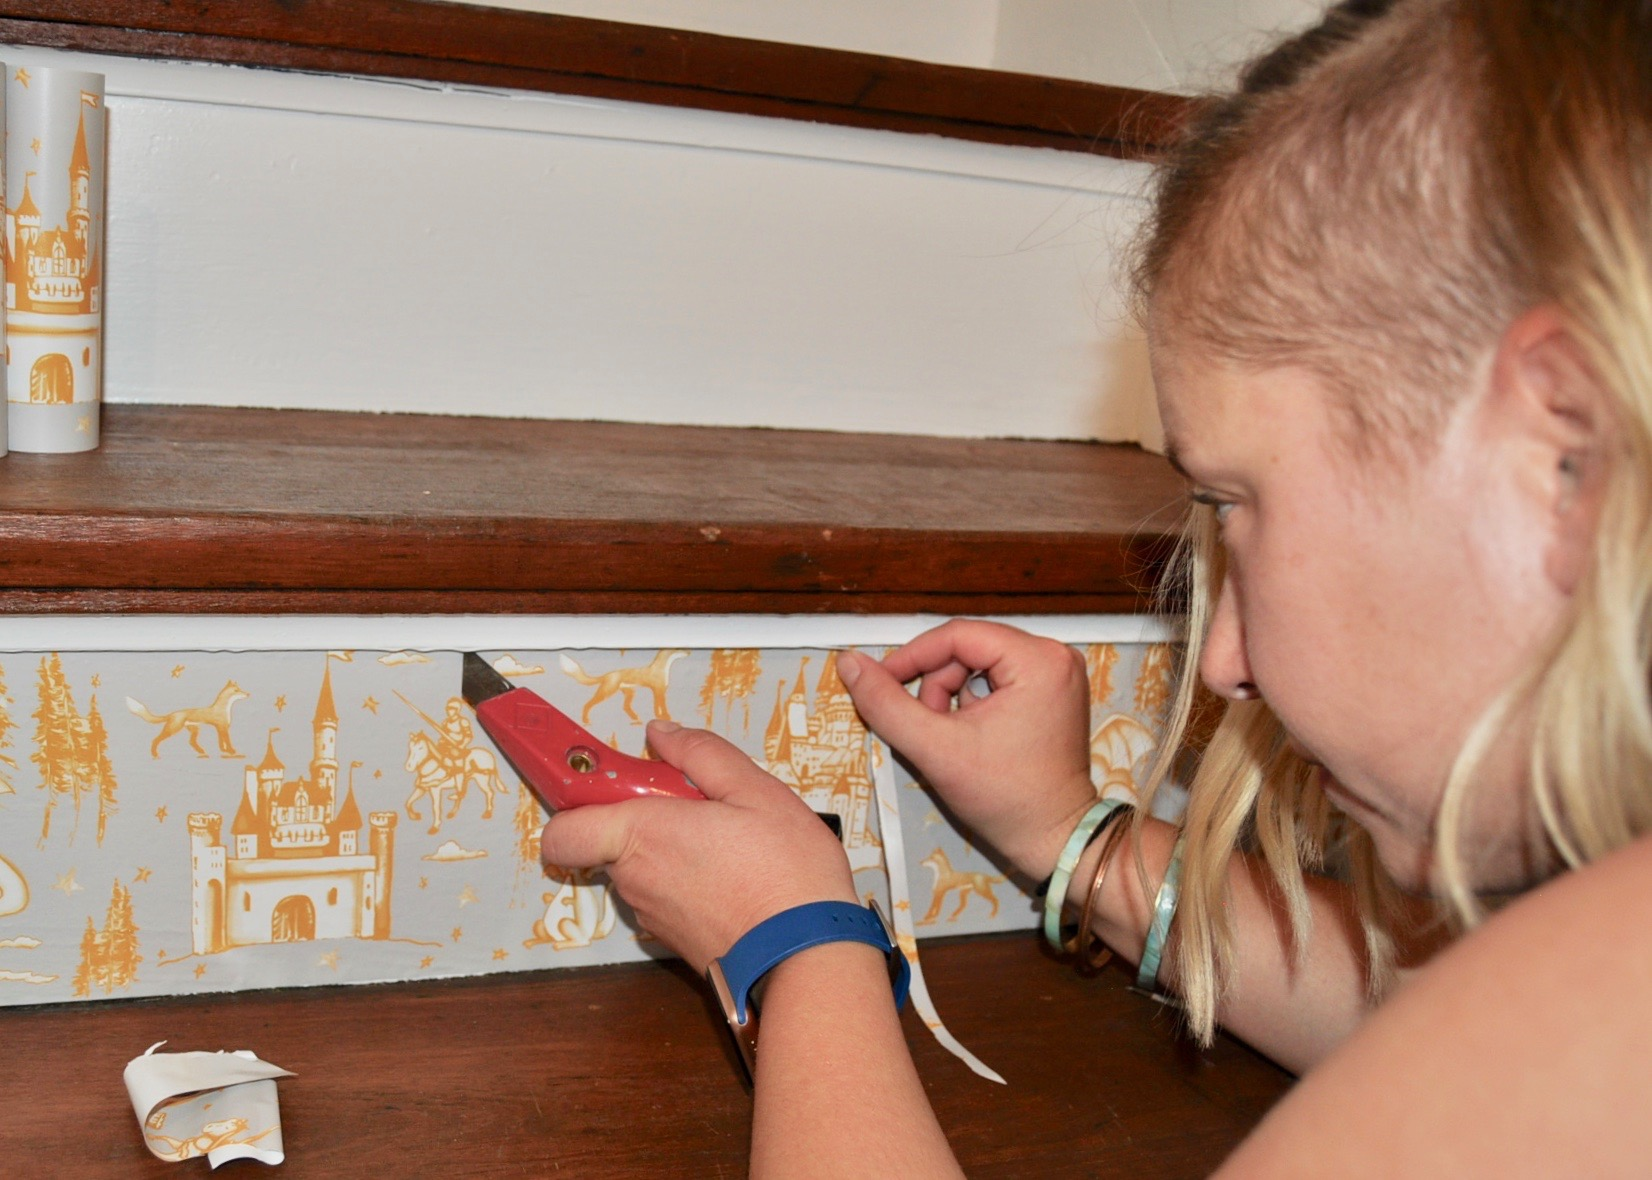 Removing the excess wallpaper with a utility knife.